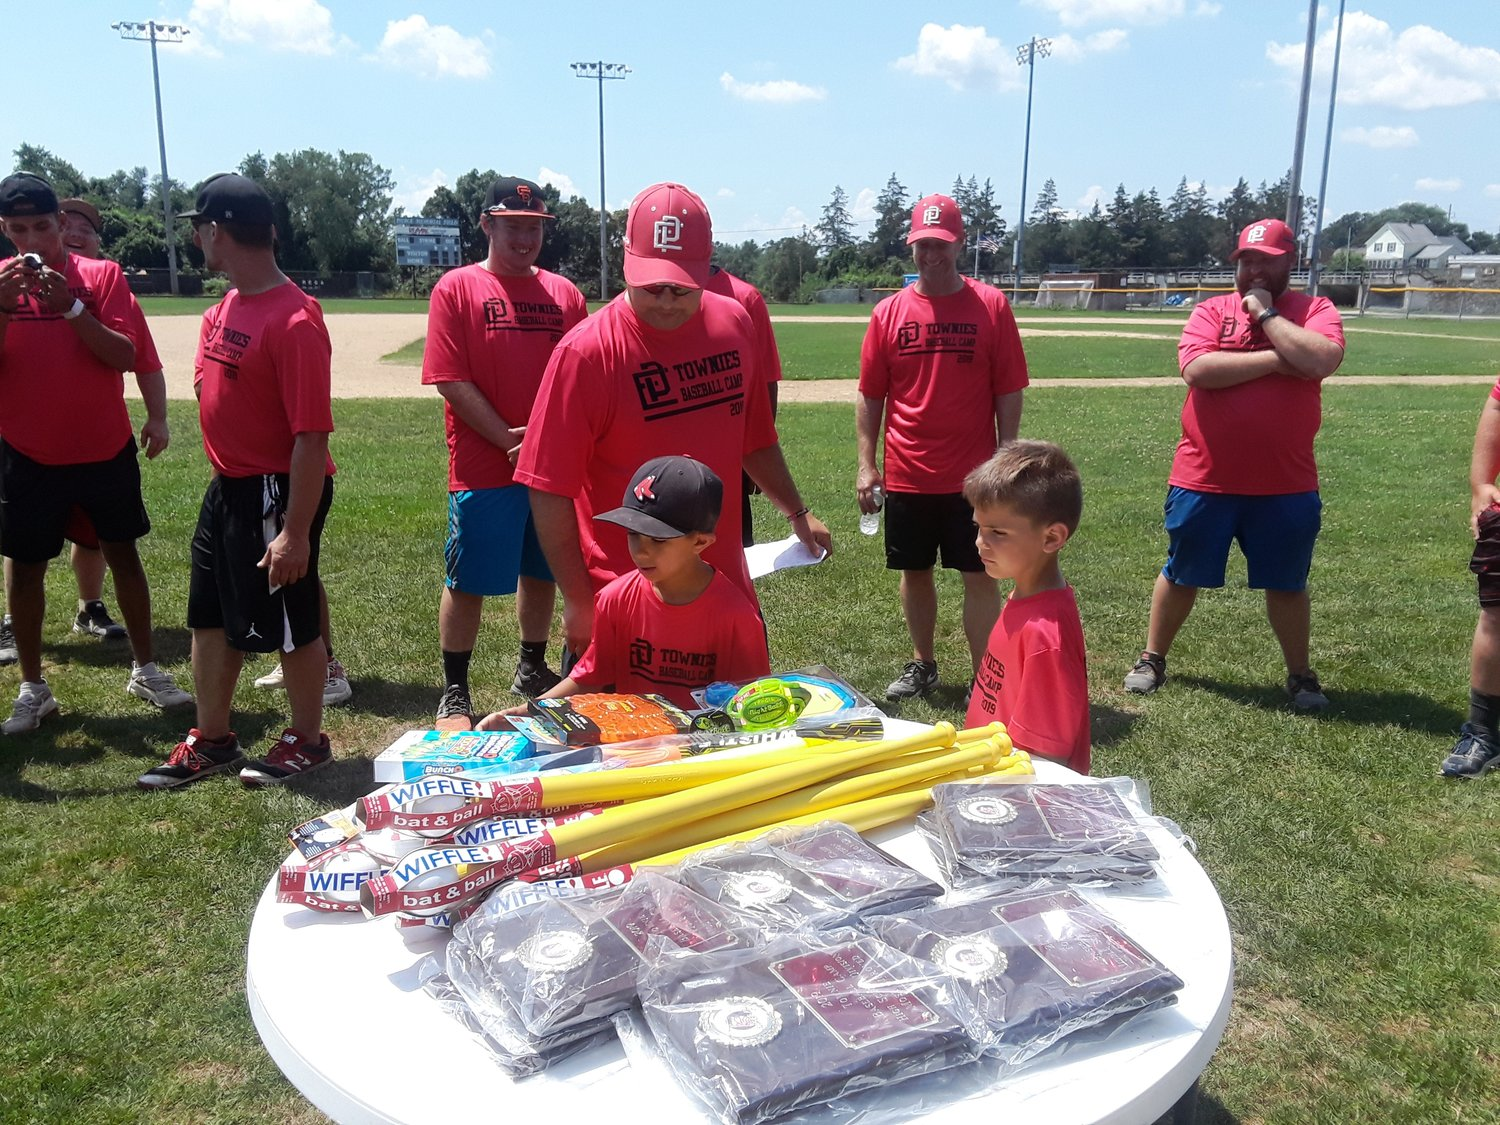 Picking out a prize at Townie Baseball Camp at Pierce Field.